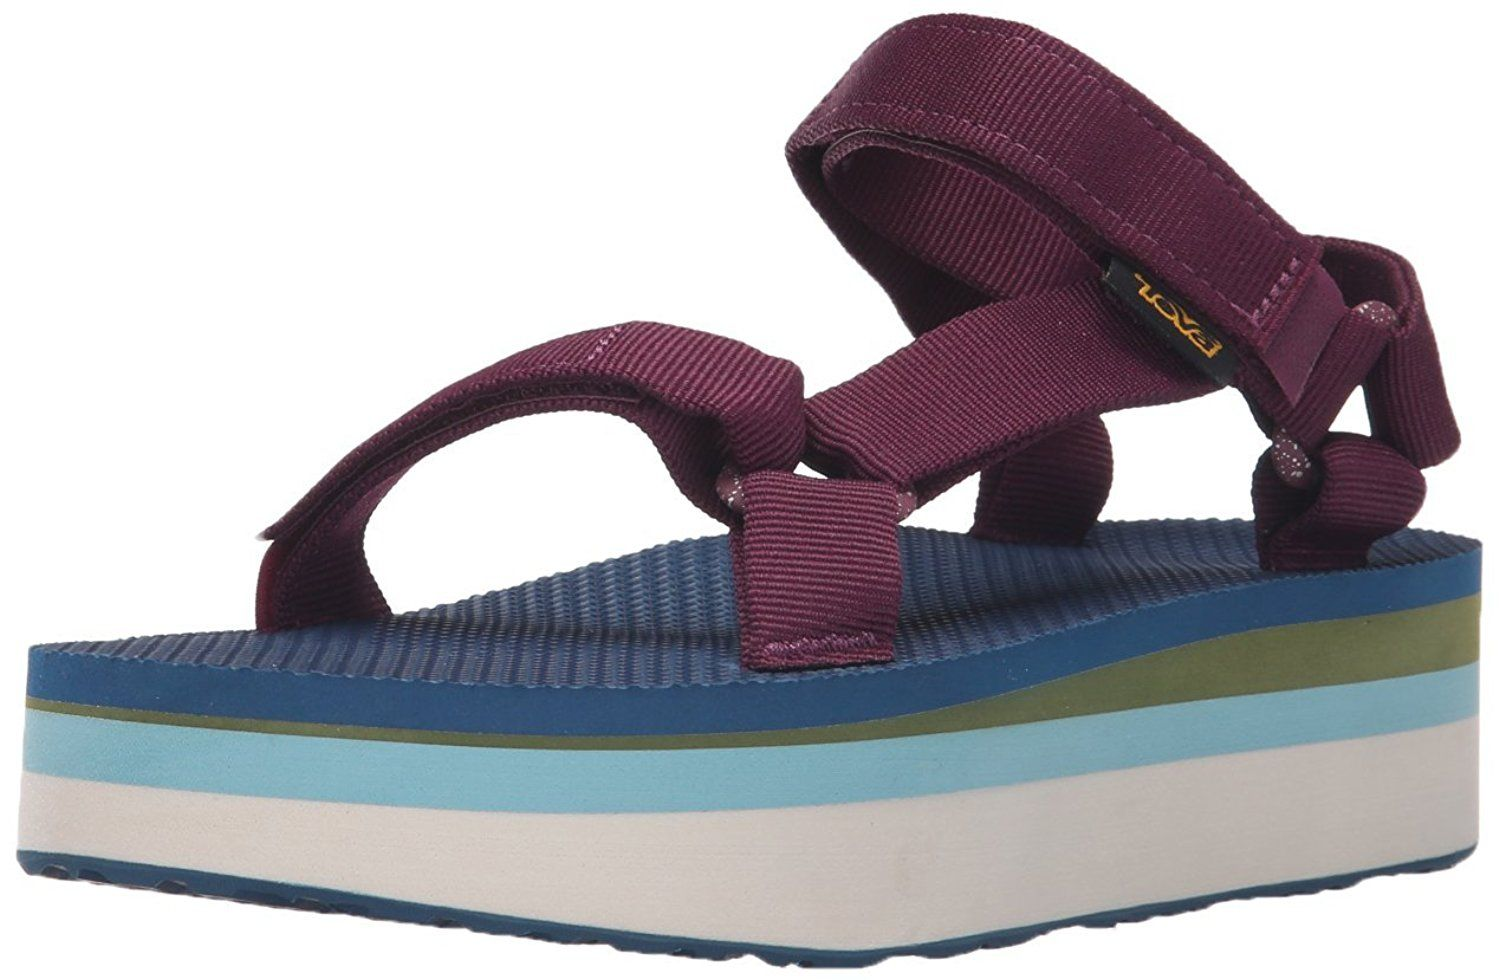 cf5dcd9cab07 Teva Women s W Flatform Universal Retro Sandal   Check this awesome image   Teva  sandals